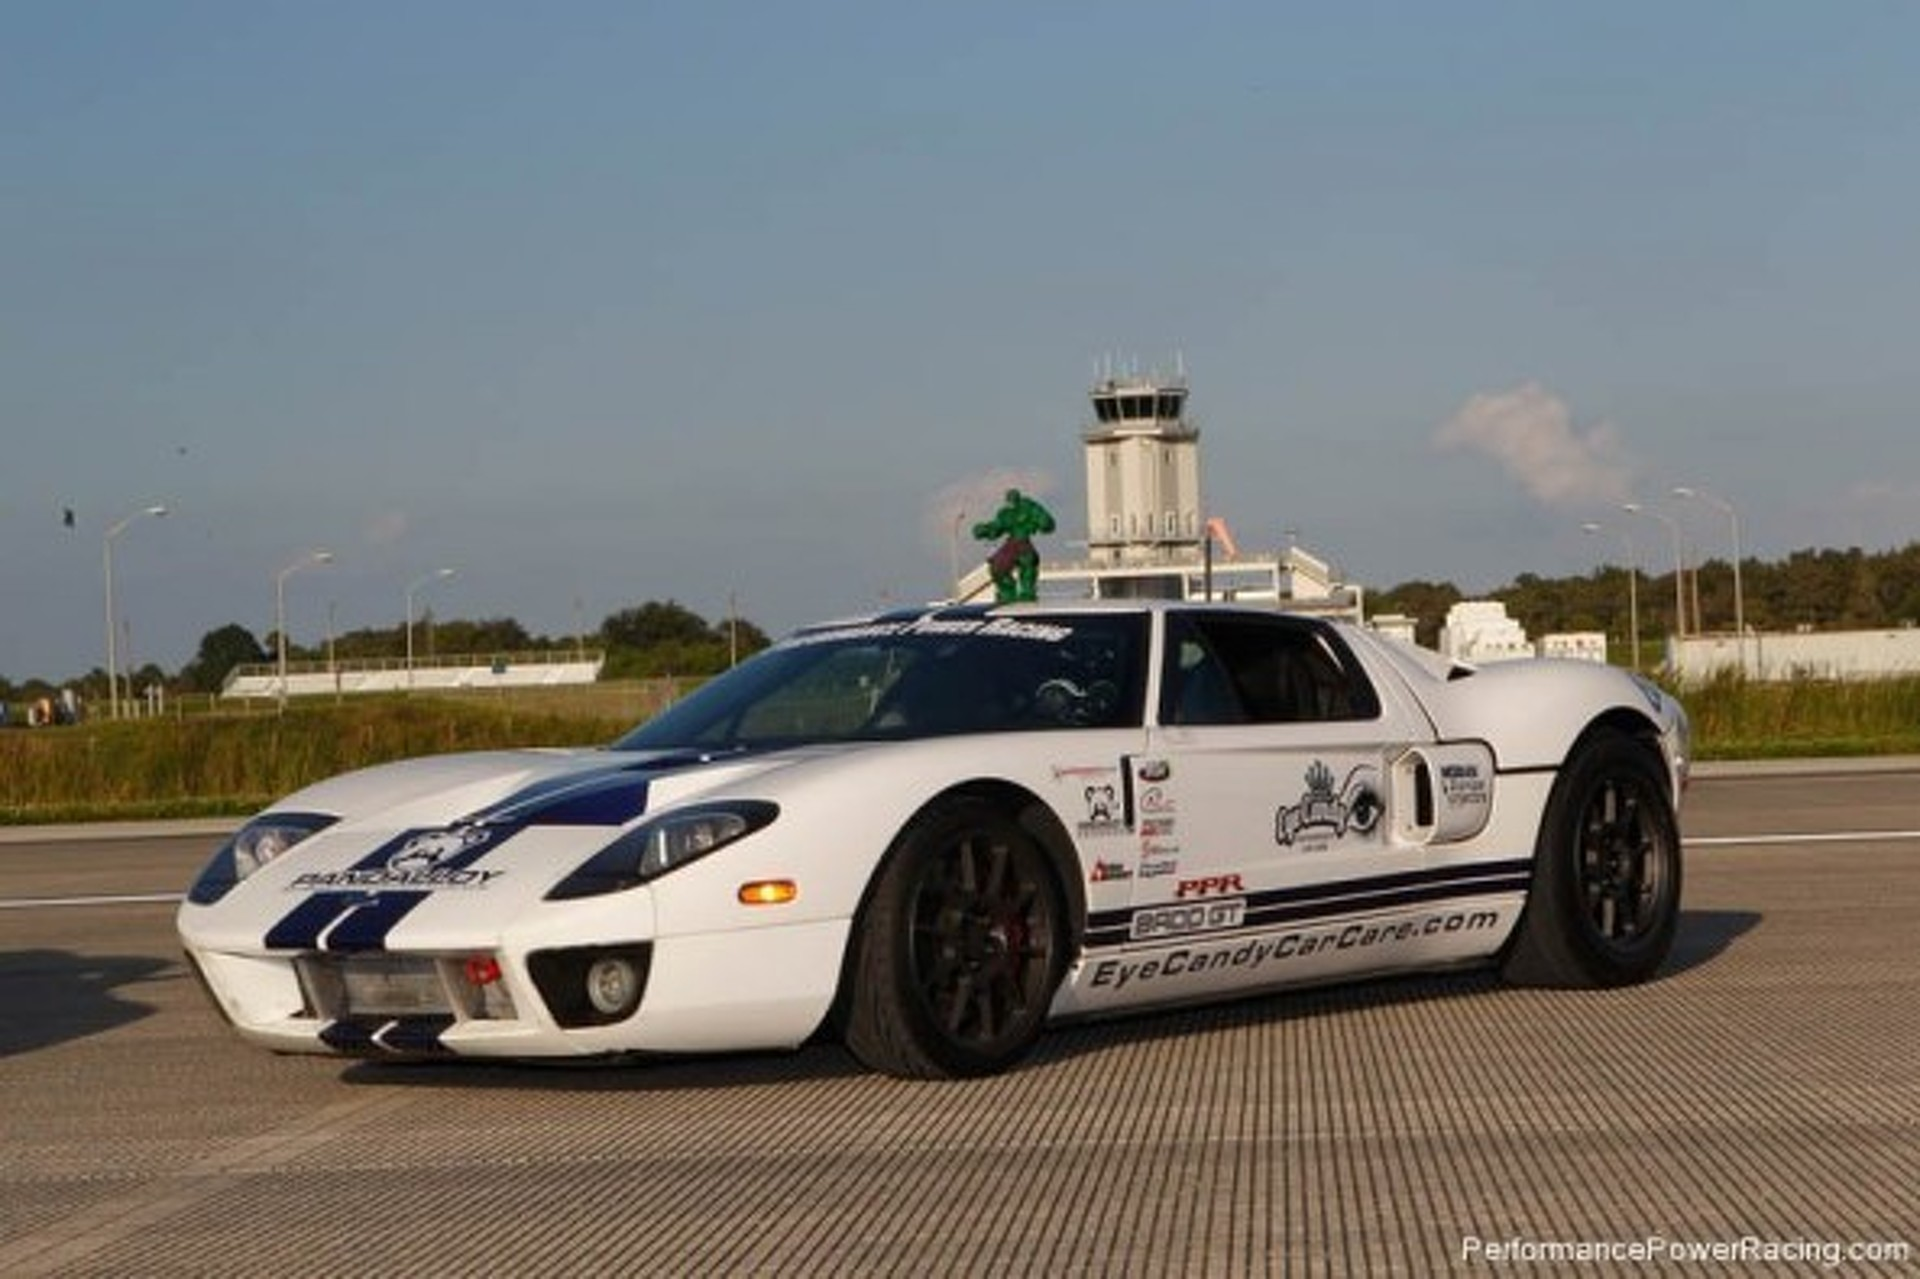 Ford GT Smashes Guinness World Record with 283 mph Top Speed